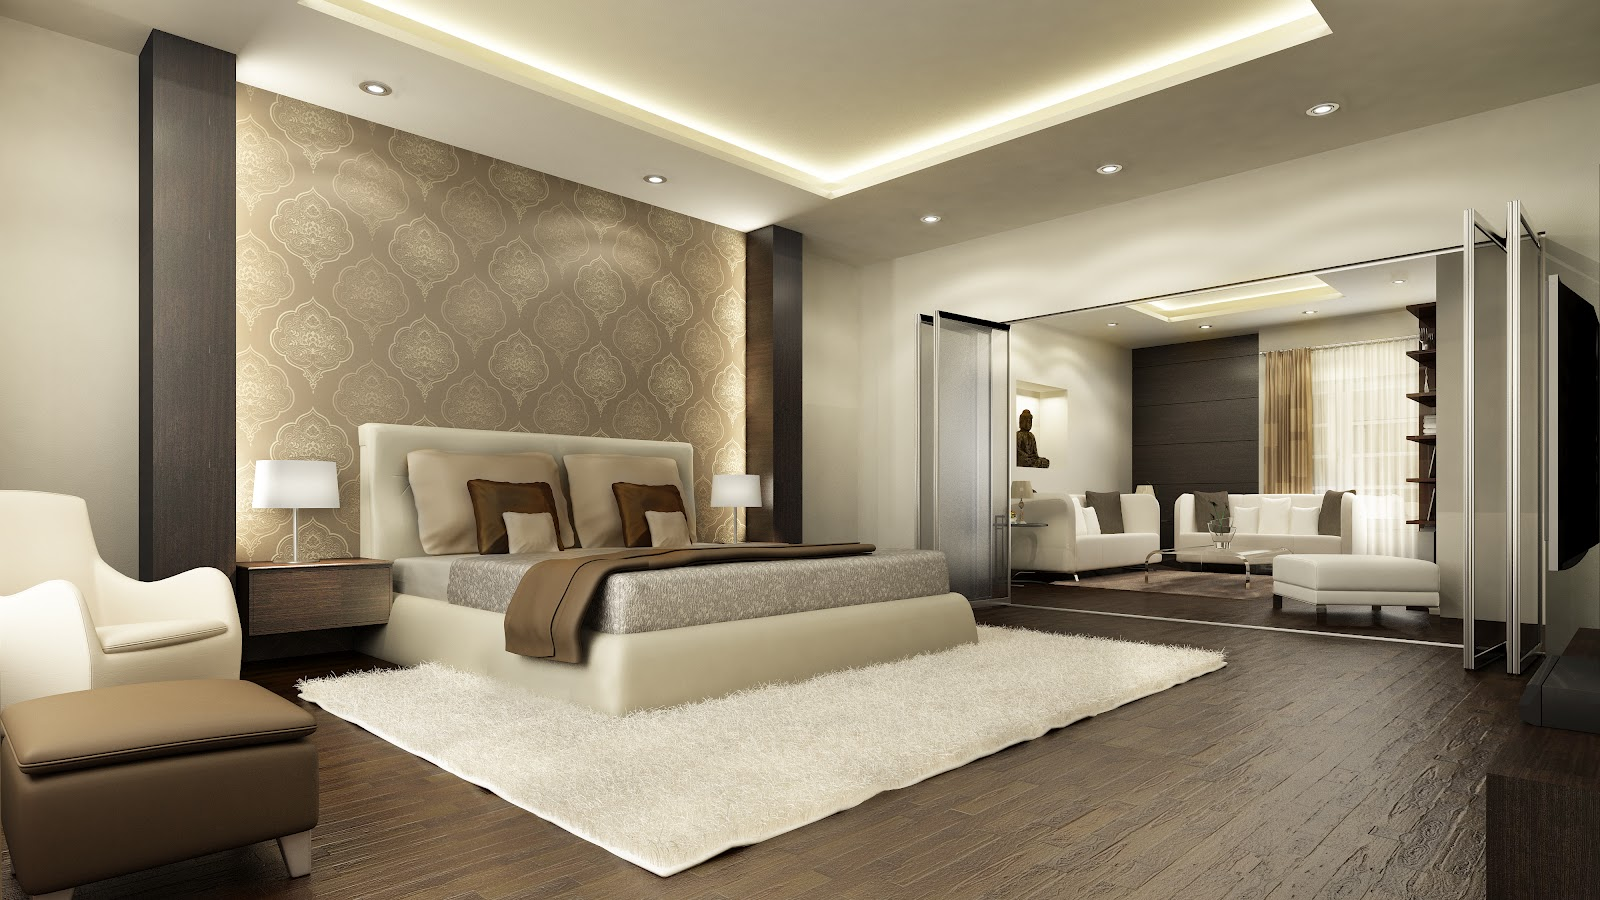 Buy luxury property flats homes for sale for Luxurious bedroom interior design ideas